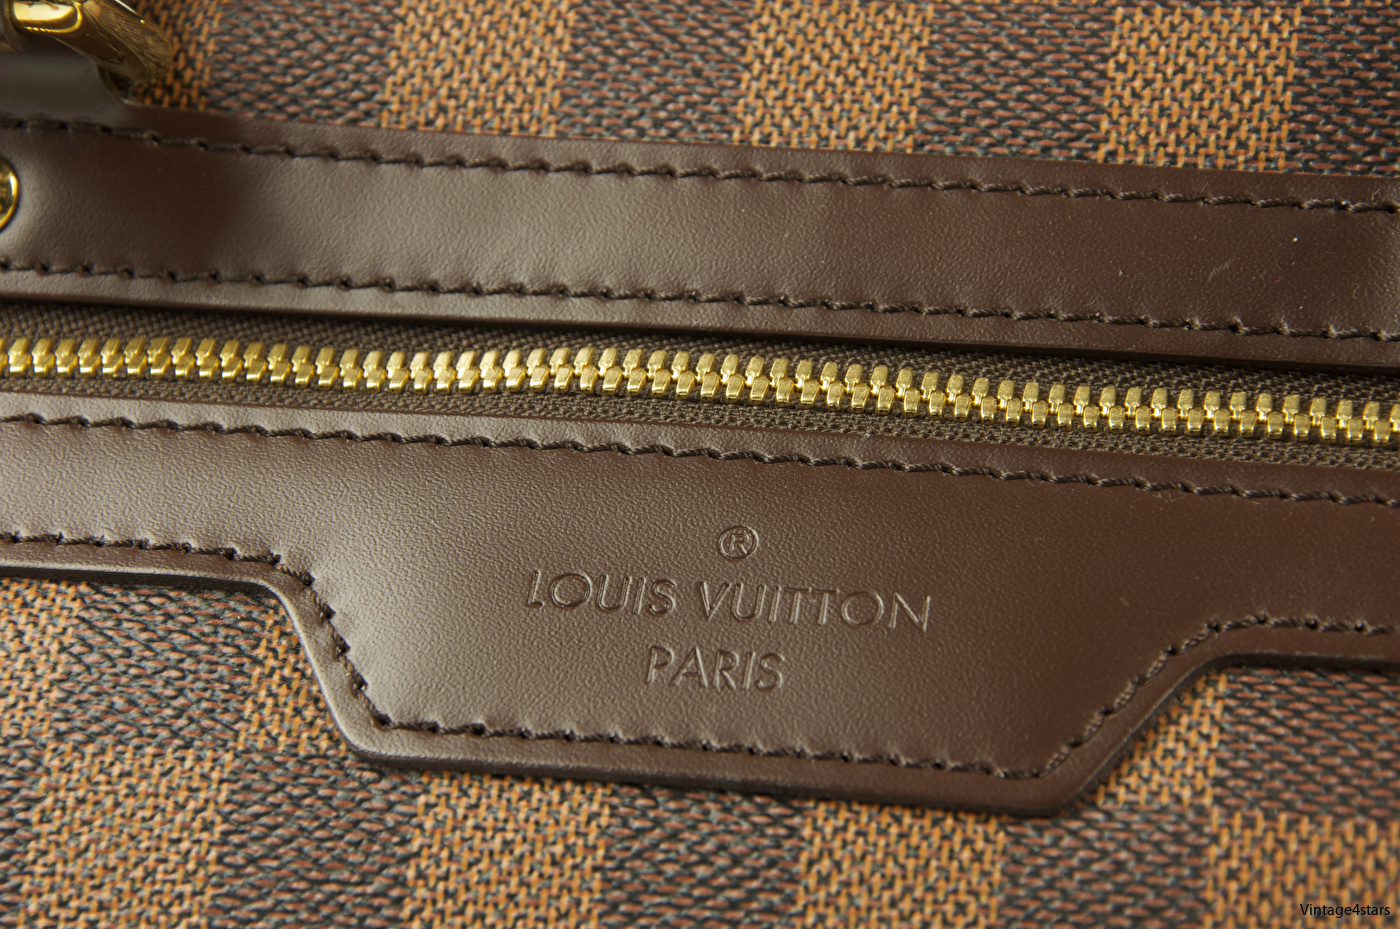 LOuis Vuitton Eole 50 18